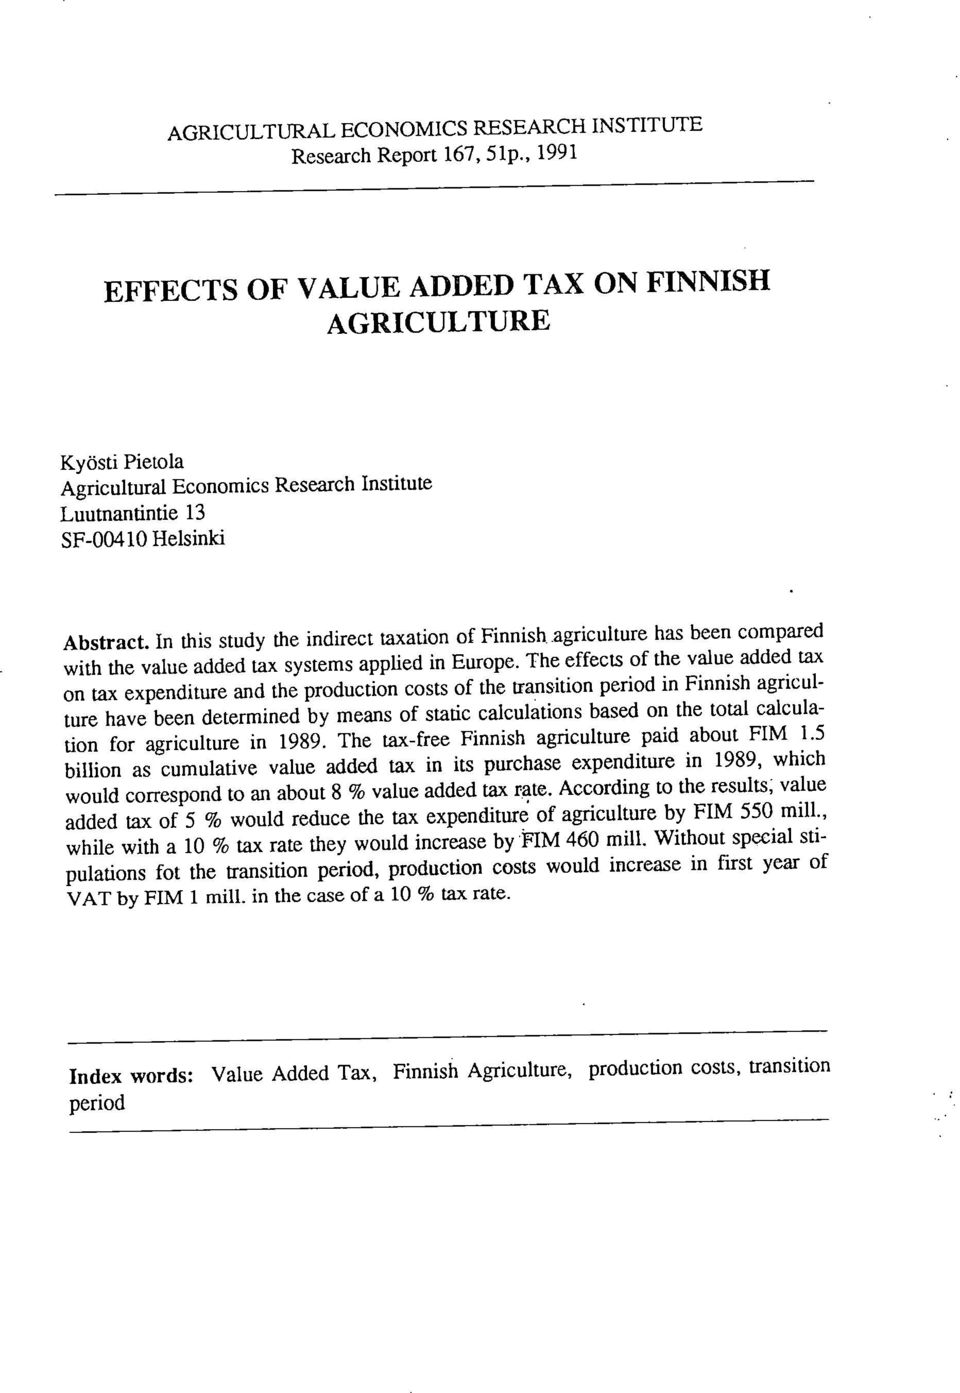 In this study the indirect taxation of Finnish agriculture has been compared with the value added tax systems applied in Europe.